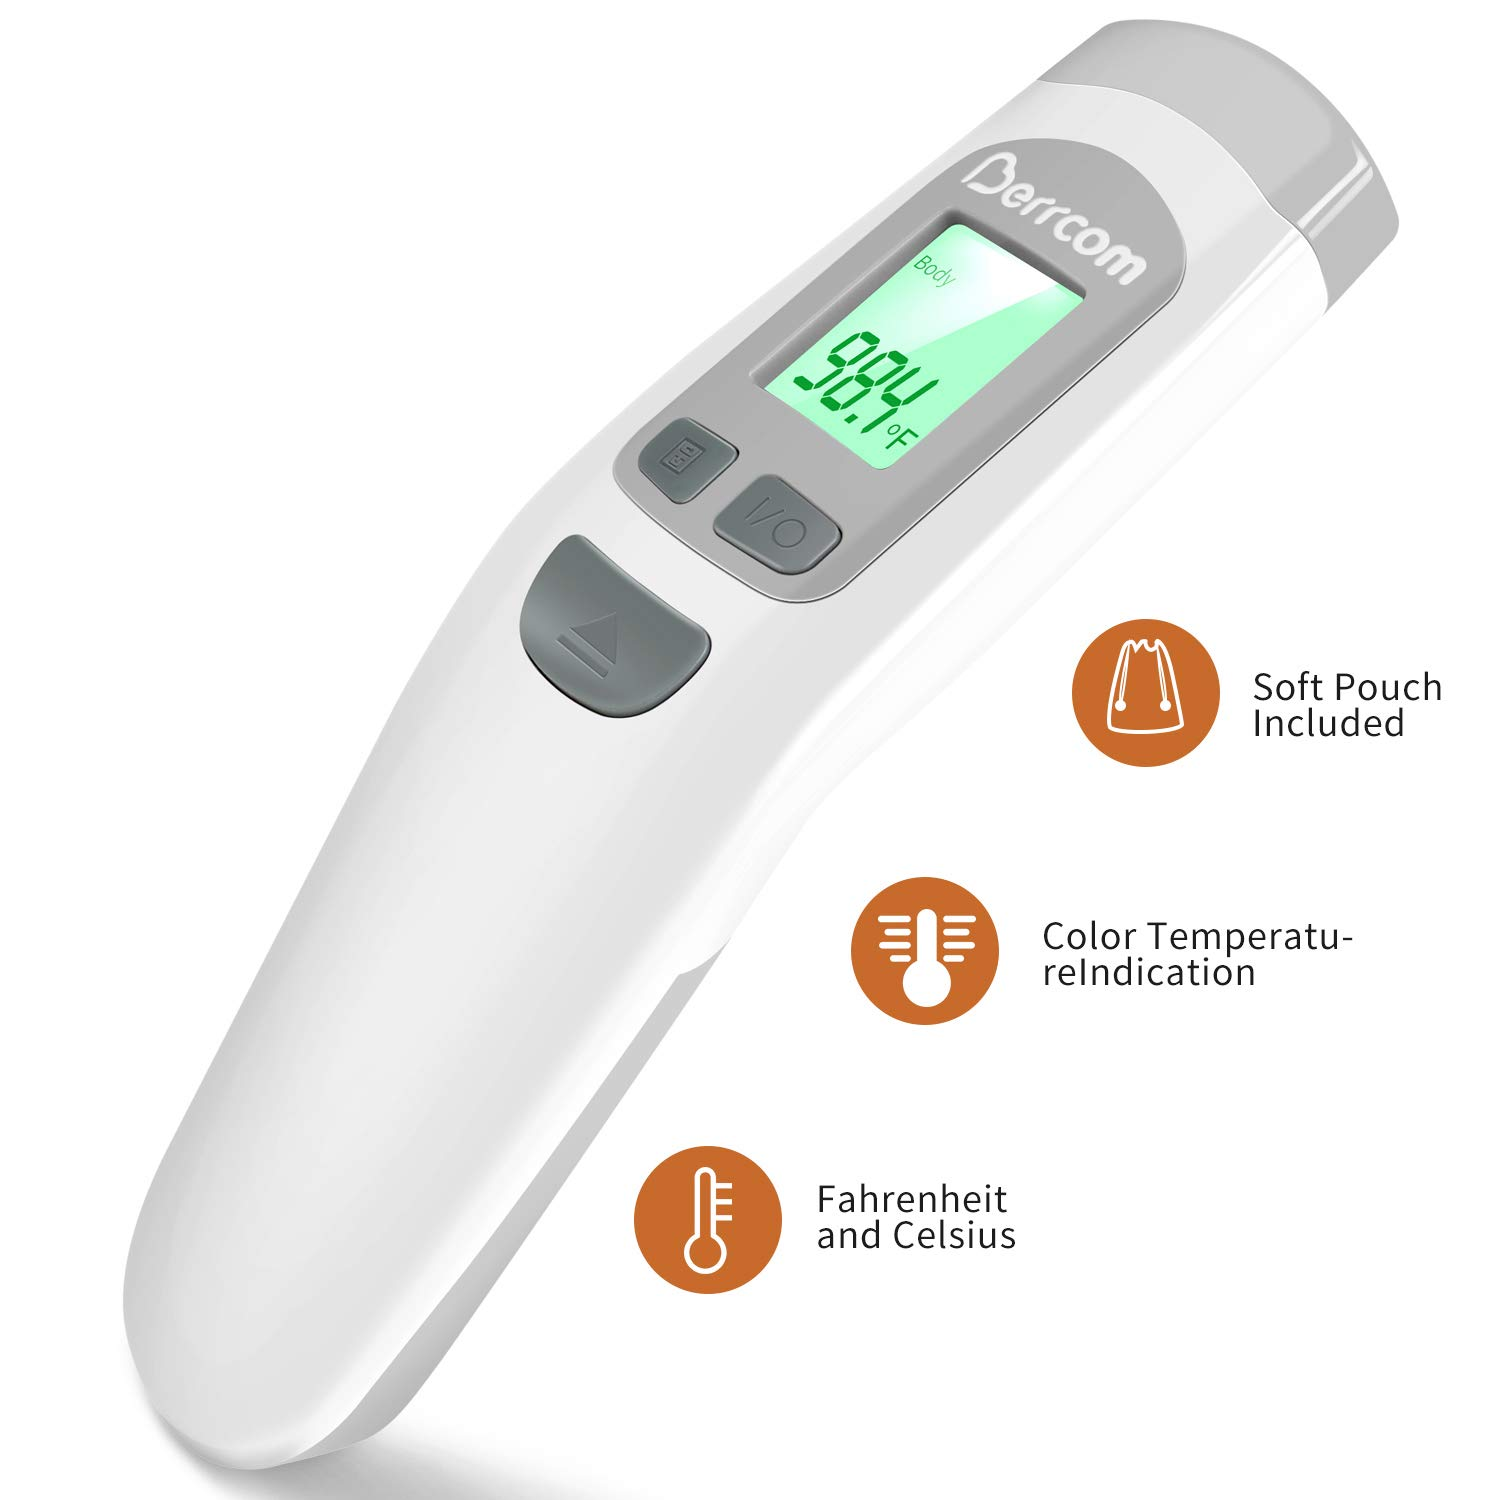 Baby Infrared Forehead Thermometer, FDA Approved Medical Grade Non Contact Thermometer for Kids, Infants,Toddlers, Child, Adults, Nurses. Cold, Flu, Fever Thermometer by Berrcom